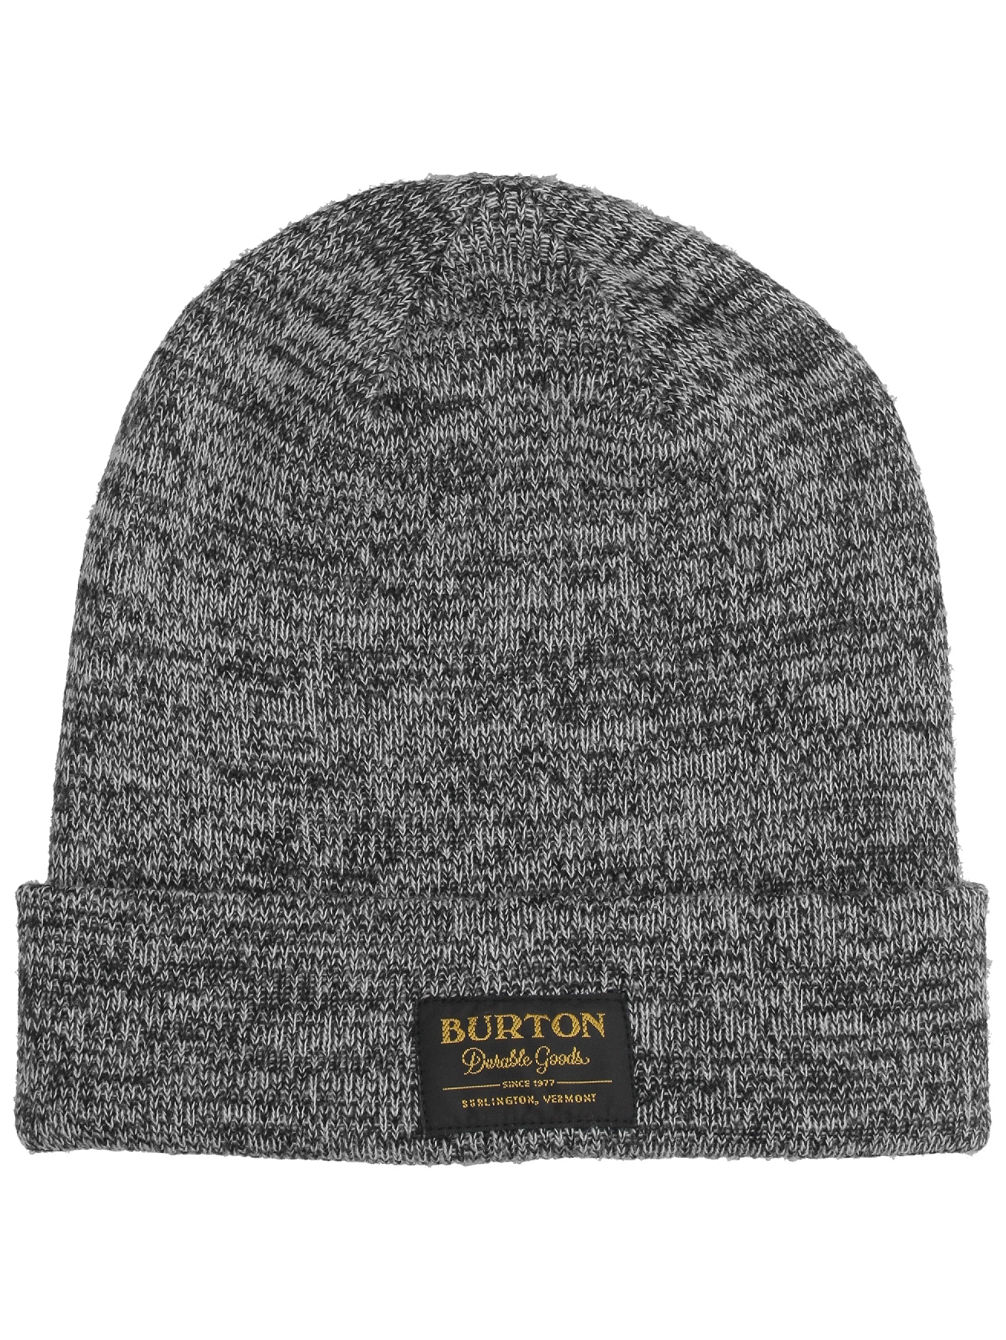 c4d7c4fe699 Buy Burton Kactusbunch Tall Beanie online at Blue Tomato